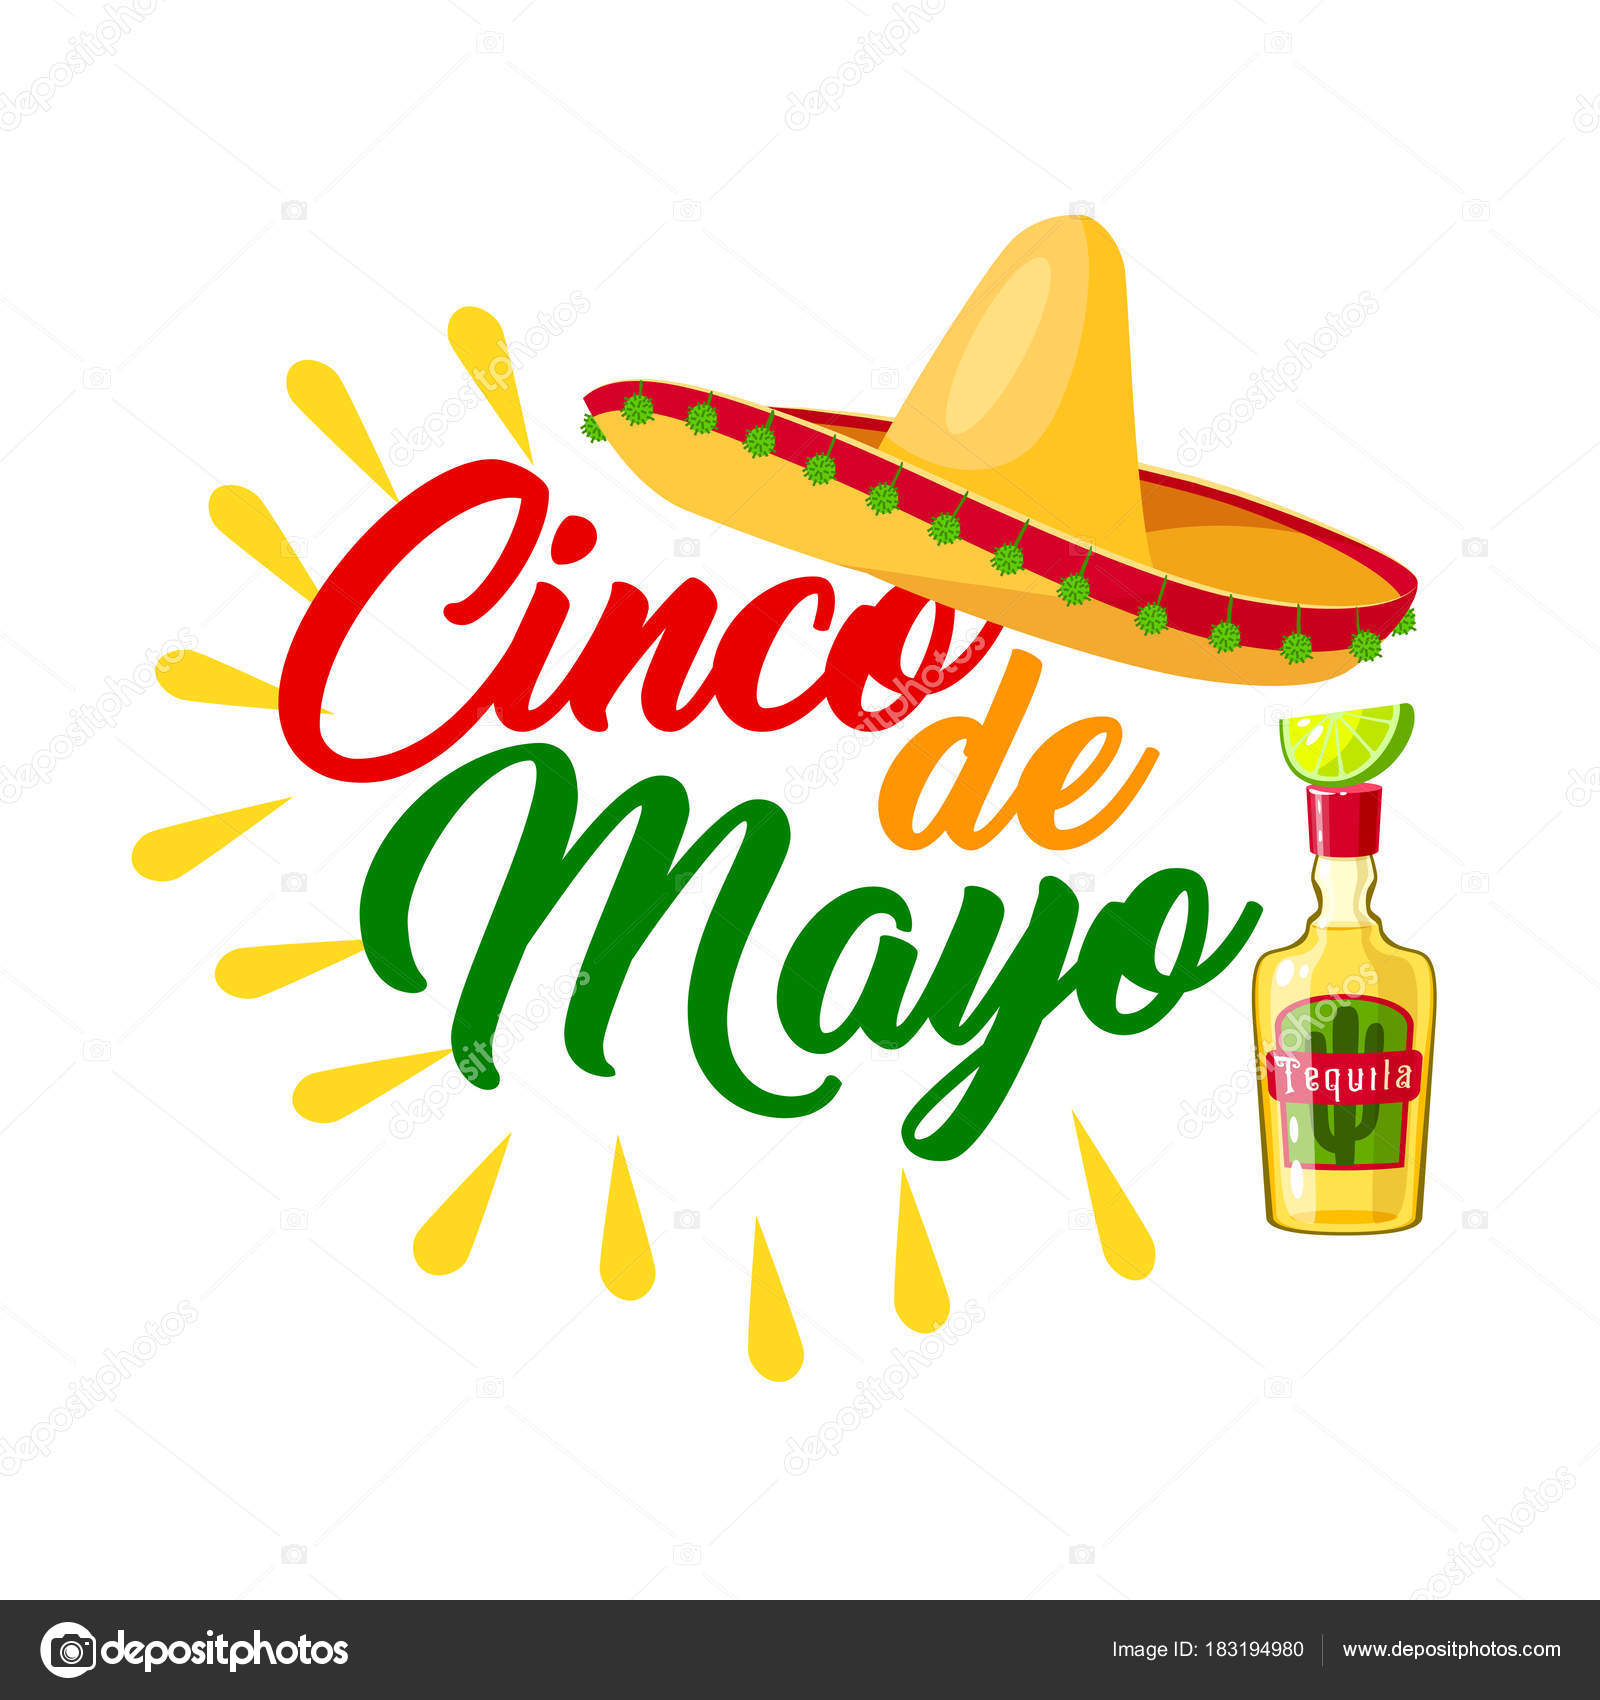 Cinco de mayo mexican holiday icon with sombrero stock vector cinco de mayo mexican holiday icon with festive sombrero latin american hat tequila margarita and lime fruit greeting card in colors of mexico flag for m4hsunfo